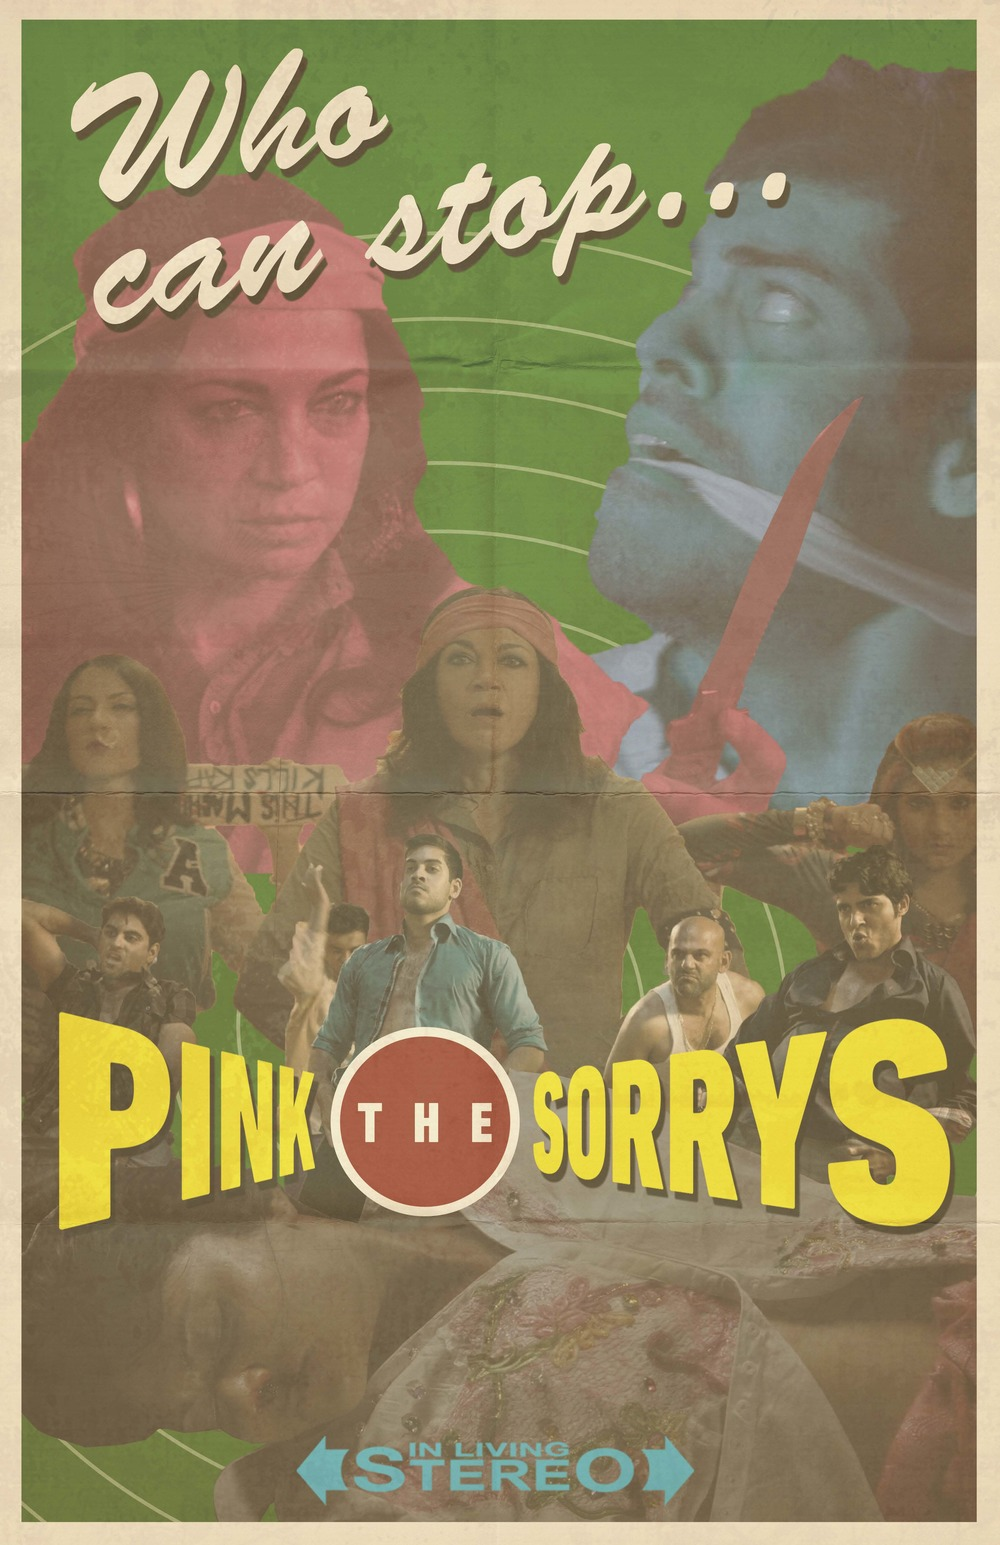 The-Pink-Sorrys-Poster.jpg